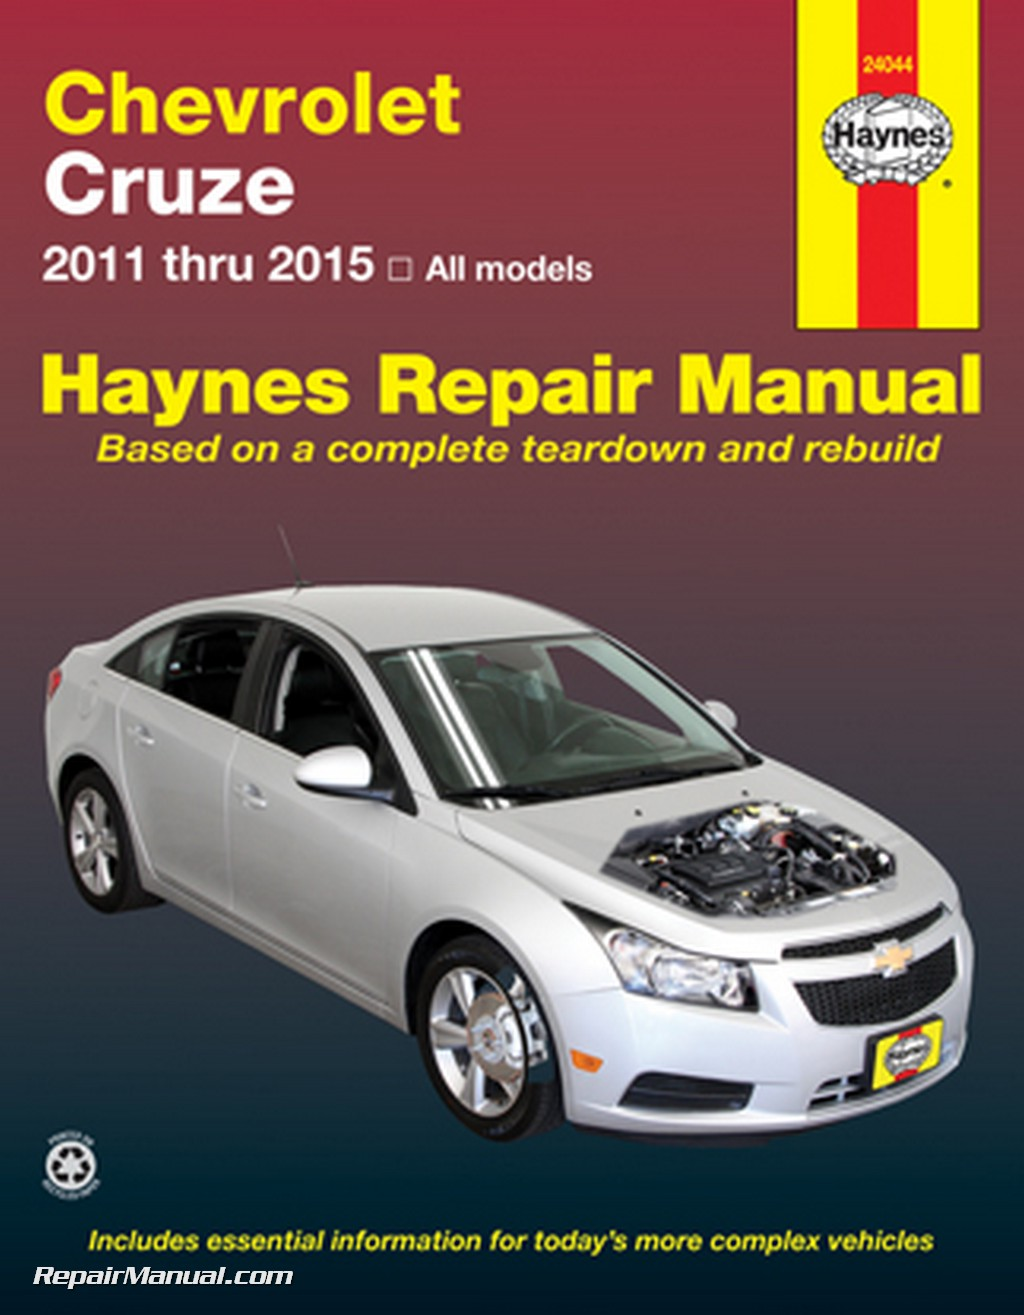 chevrolet cruze haynes automotive repair manual 2011 2015. Black Bedroom Furniture Sets. Home Design Ideas